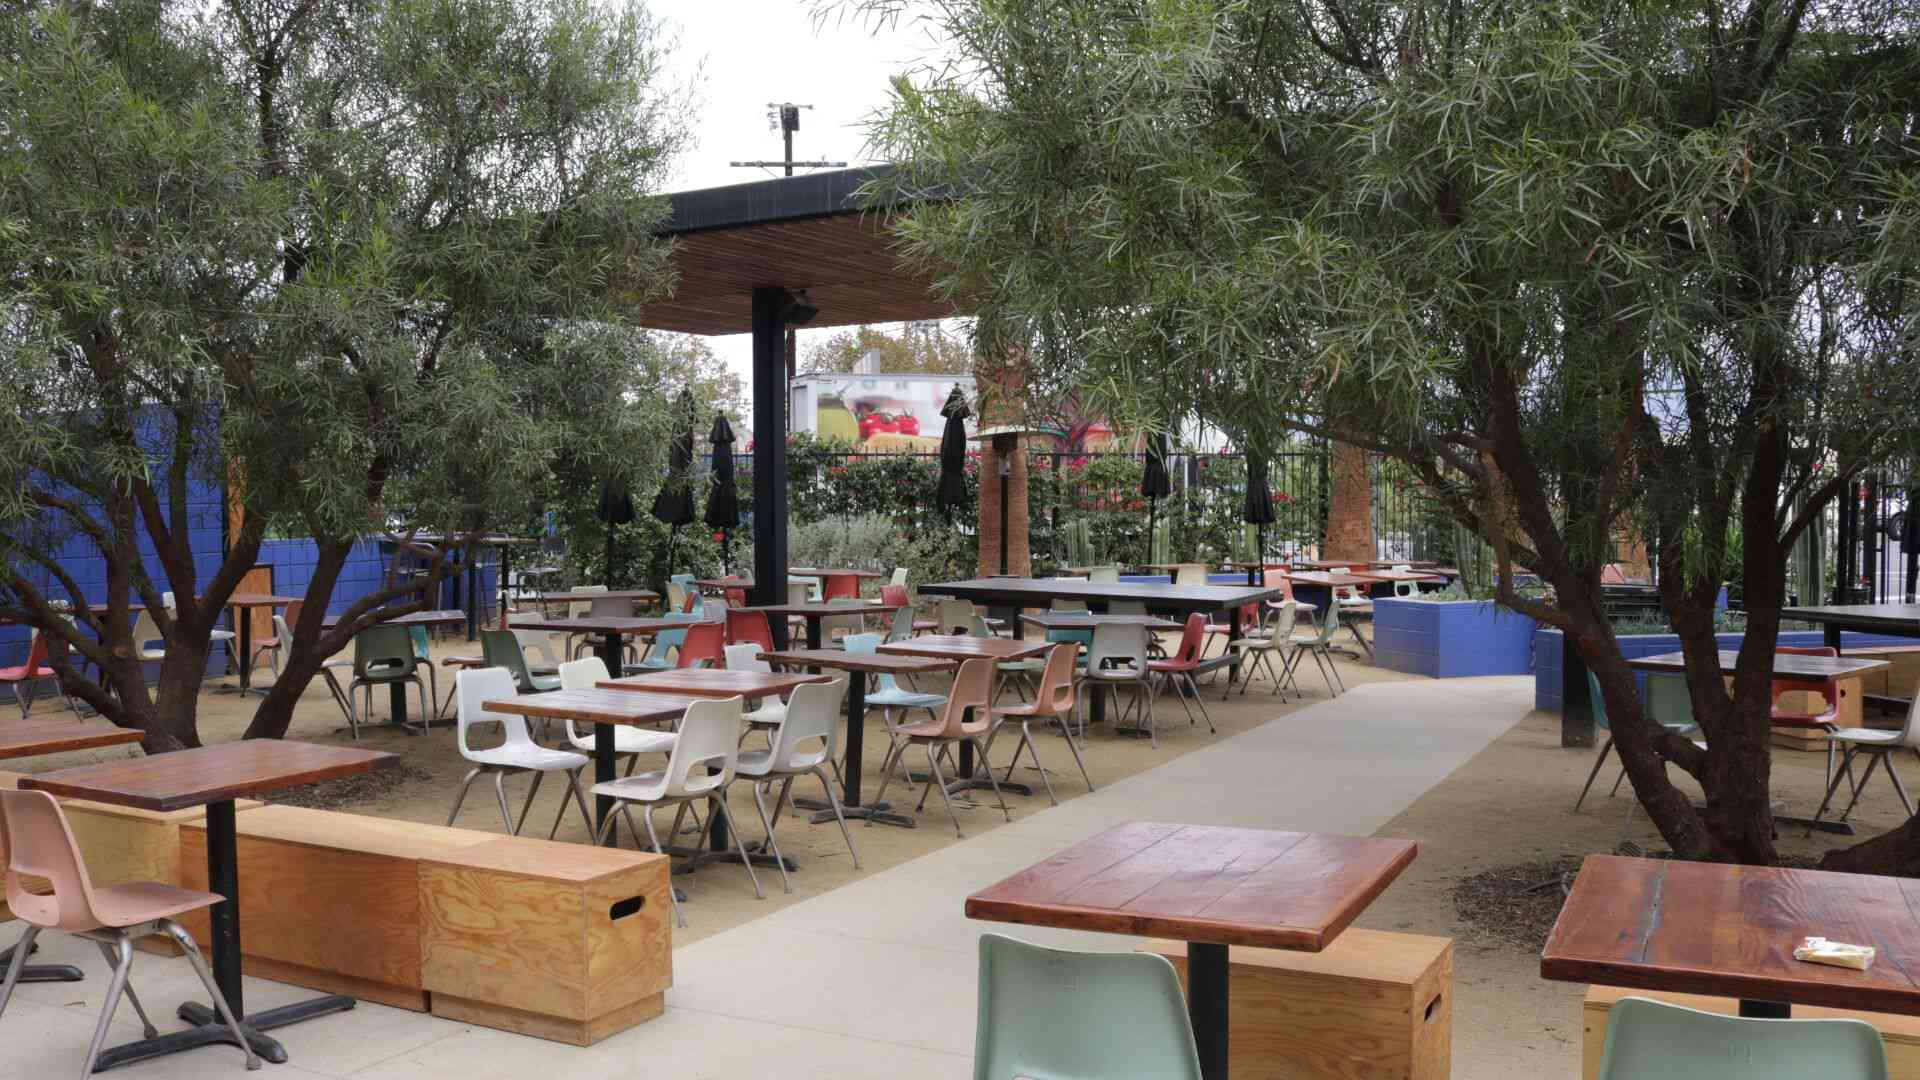 Outdoor tables and a plastic chairs at Salazar restaurant